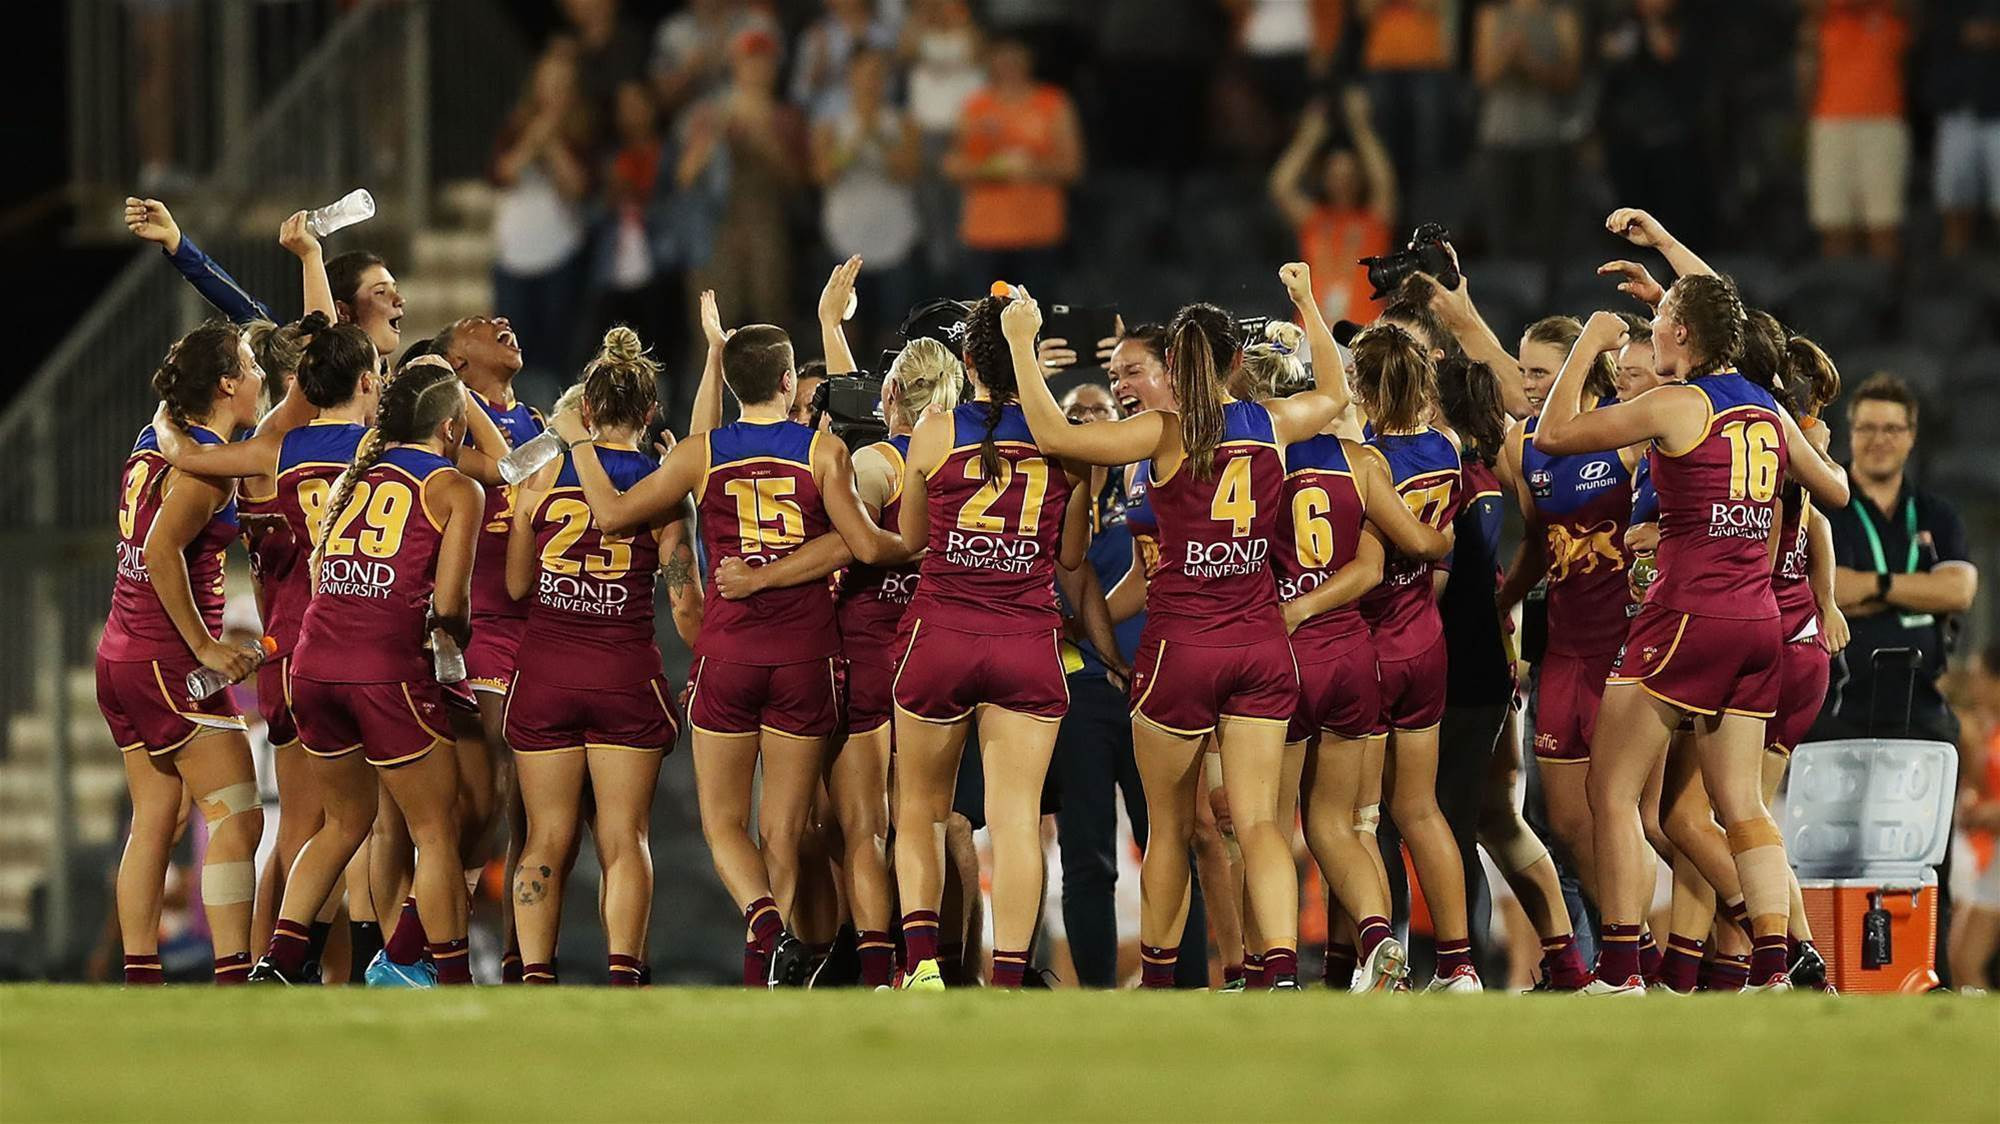 Lions through to their second grand final